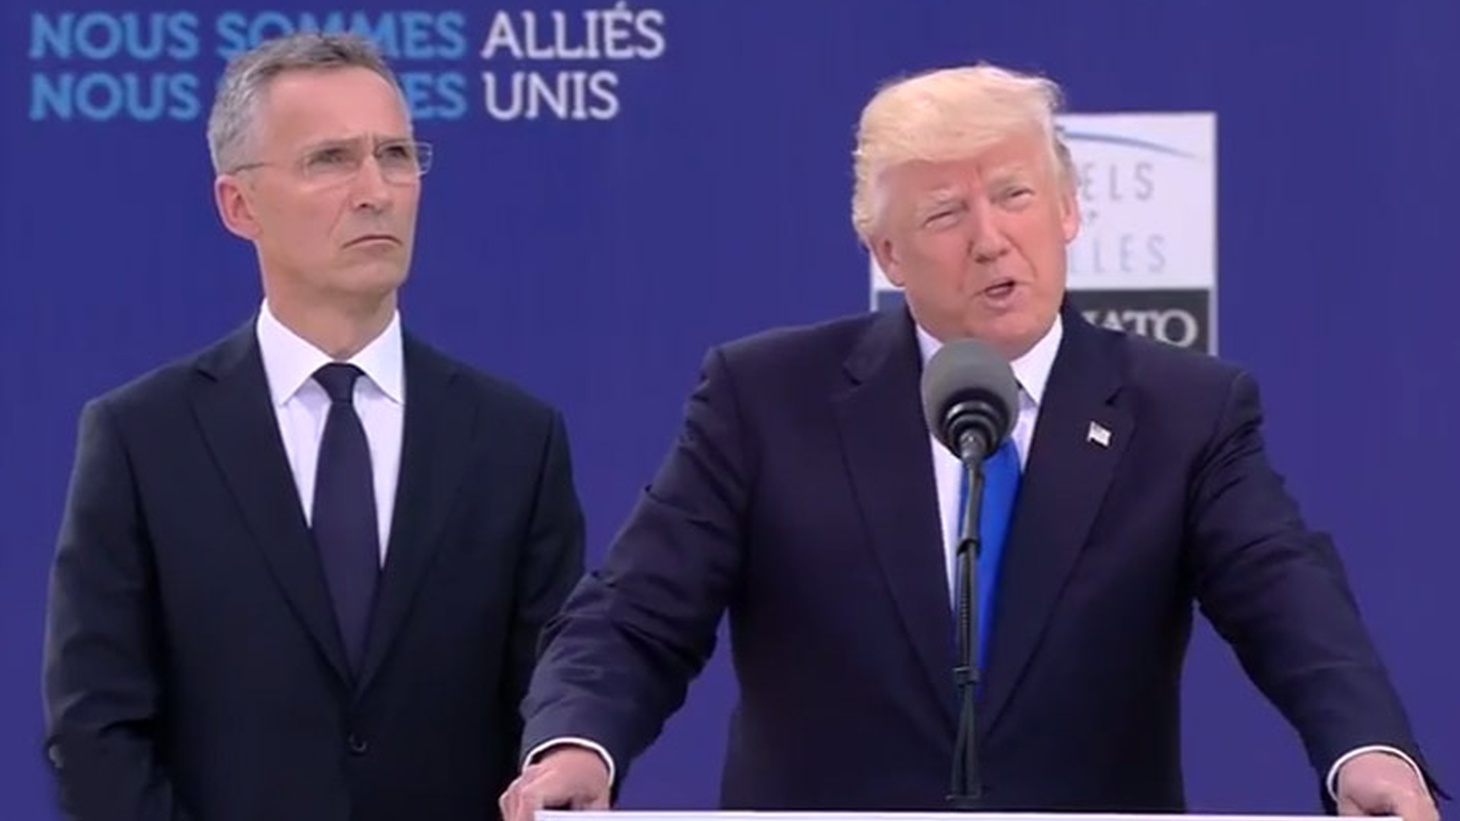 """At the opening of NATO's dramatic new headquarters in Brussels today, President Trump acknowledged that Article 5 — promising that """"an attack on one nation is an attack on all"""" -- has only been invoked one time: in the aftermath of September 11. But the President failed to provide what 27 other Alliance members have been waiting for: a re-commitment by America's new leader to Article 5. Instead, they got a scolding."""